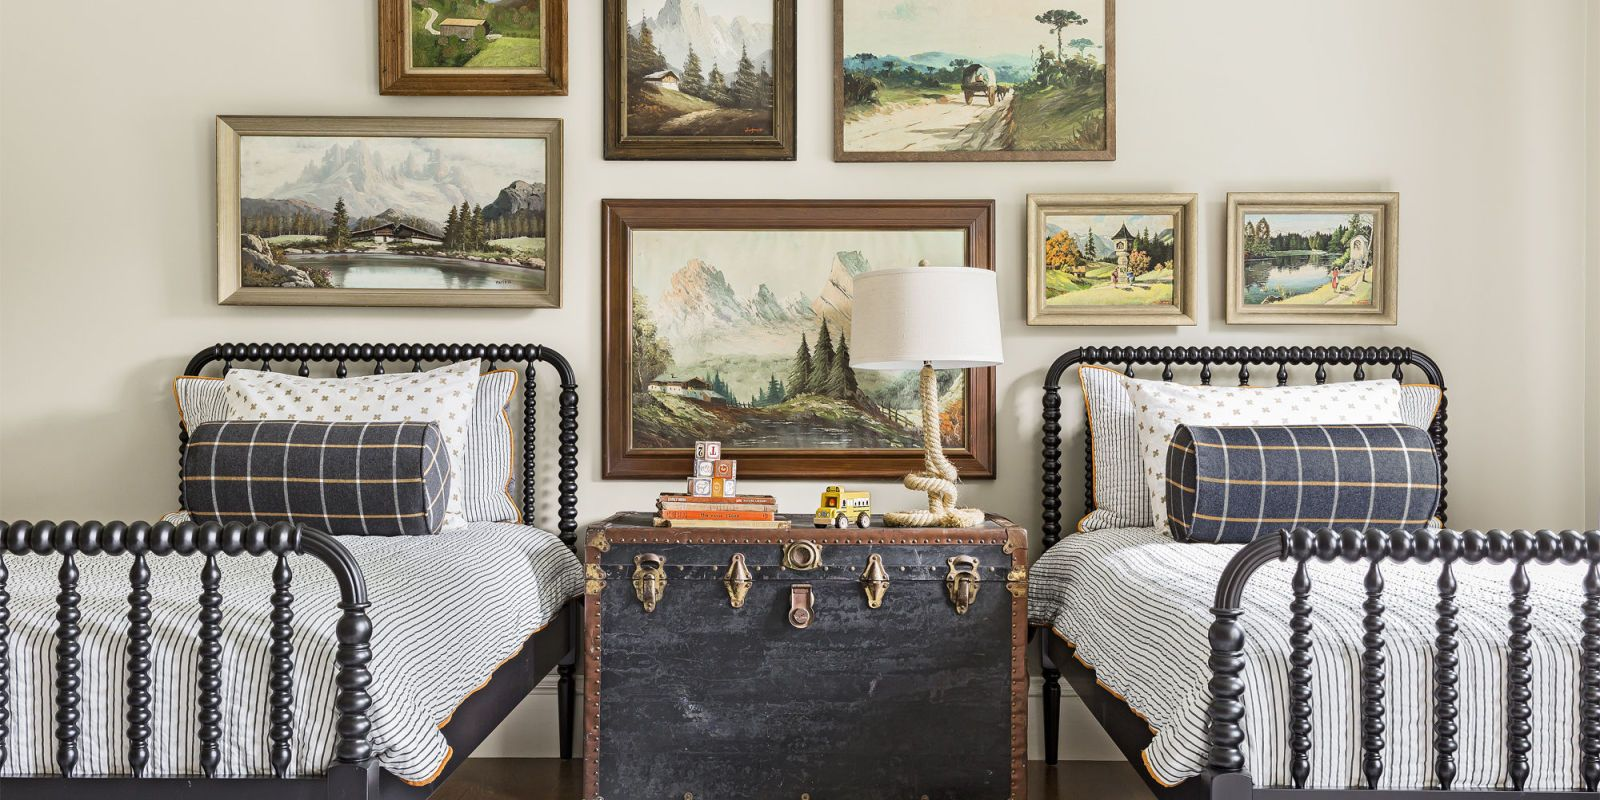 image & 100+ Bedroom Decorating Ideas in 2017 - Designs for Beautiful Bedrooms